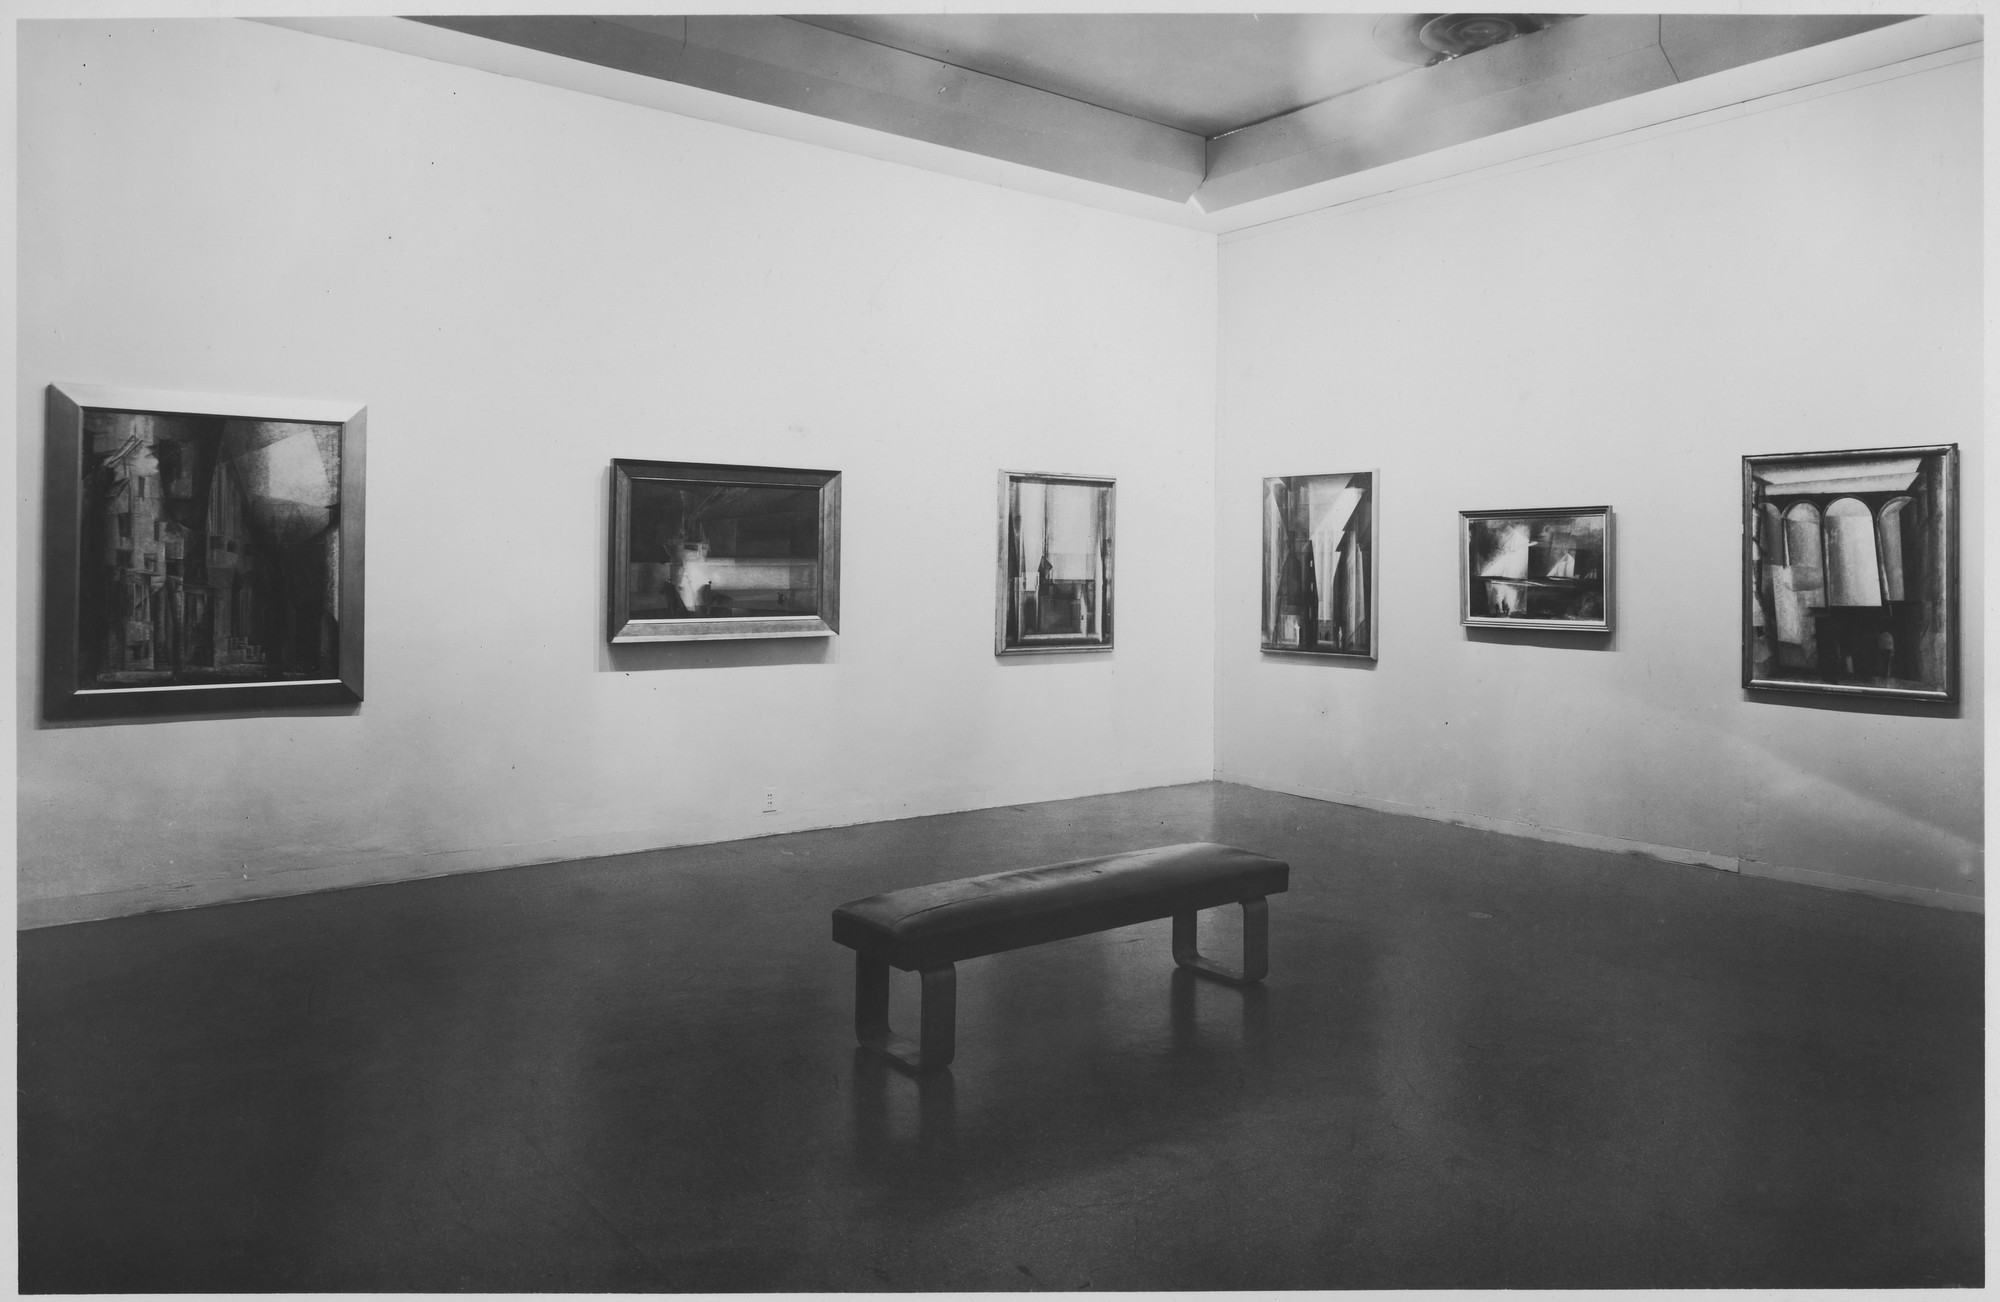 "Installation view of the exhibition, ""Lyonel Feininger."" October 24, 1944–January 14, 1945. Photographic Archive. The Museum of Modern Art Archives, New York. IN264.2. Photograph by Soichi Sunami."